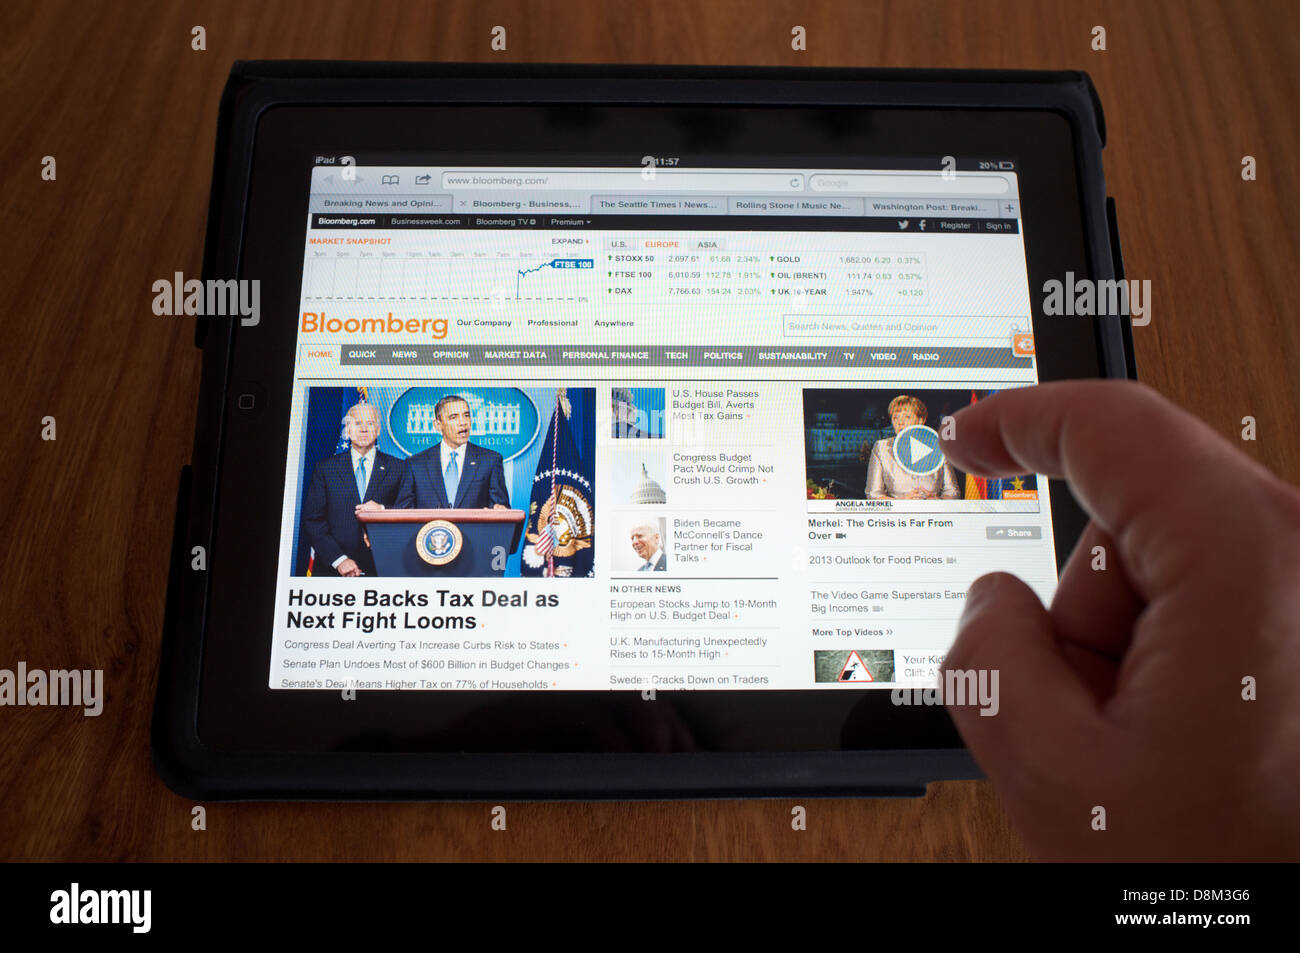 Bloomberg displayed on a tablet computer - Stock Image